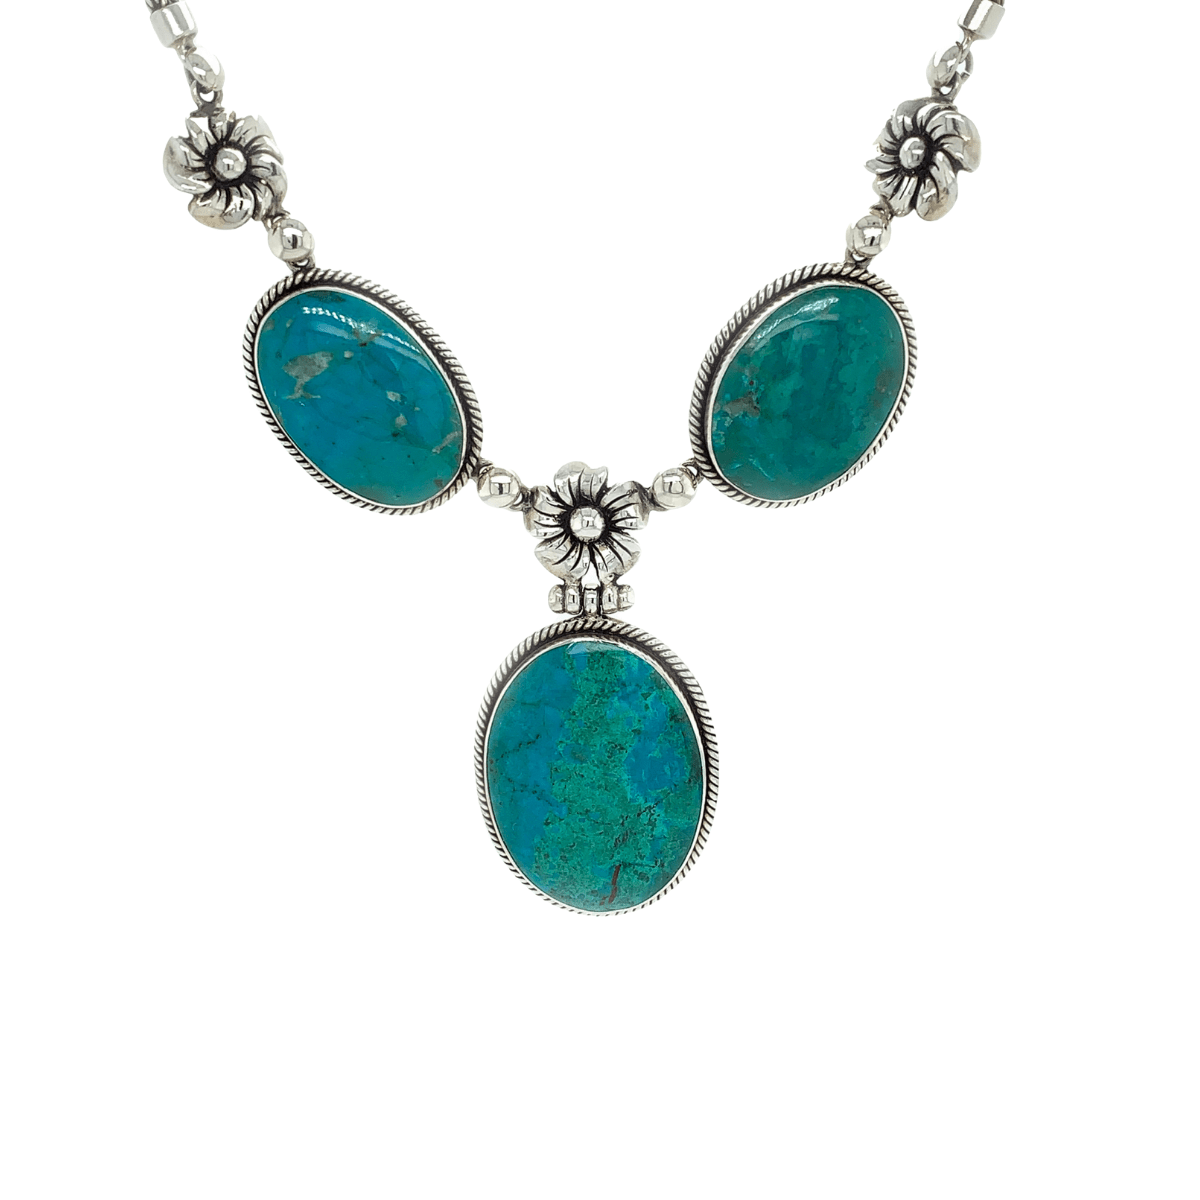 Chrysocolla (Peruvian Turquoise) Ovals & Sterling Silver Necklace - Qinti - The Peruvian Shop